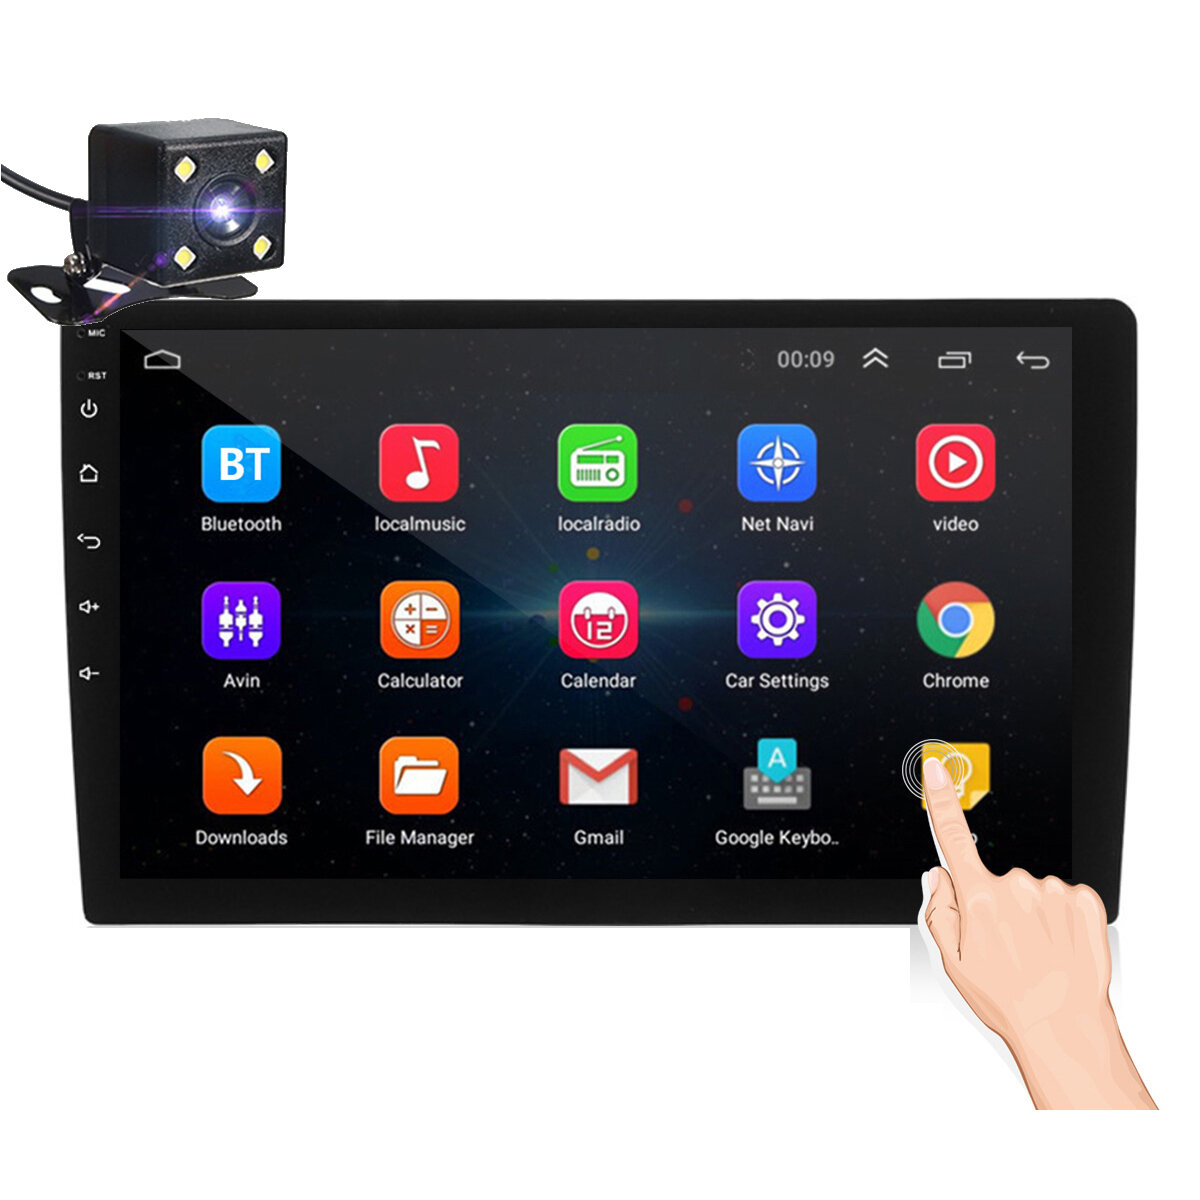 iMars 10.1 Inch 2Din for Android 8.1 Car Stereo Radio 1+16G IPS 2.5D Touch Screen MP5 Player GPS WIFI FM with Backup Camera